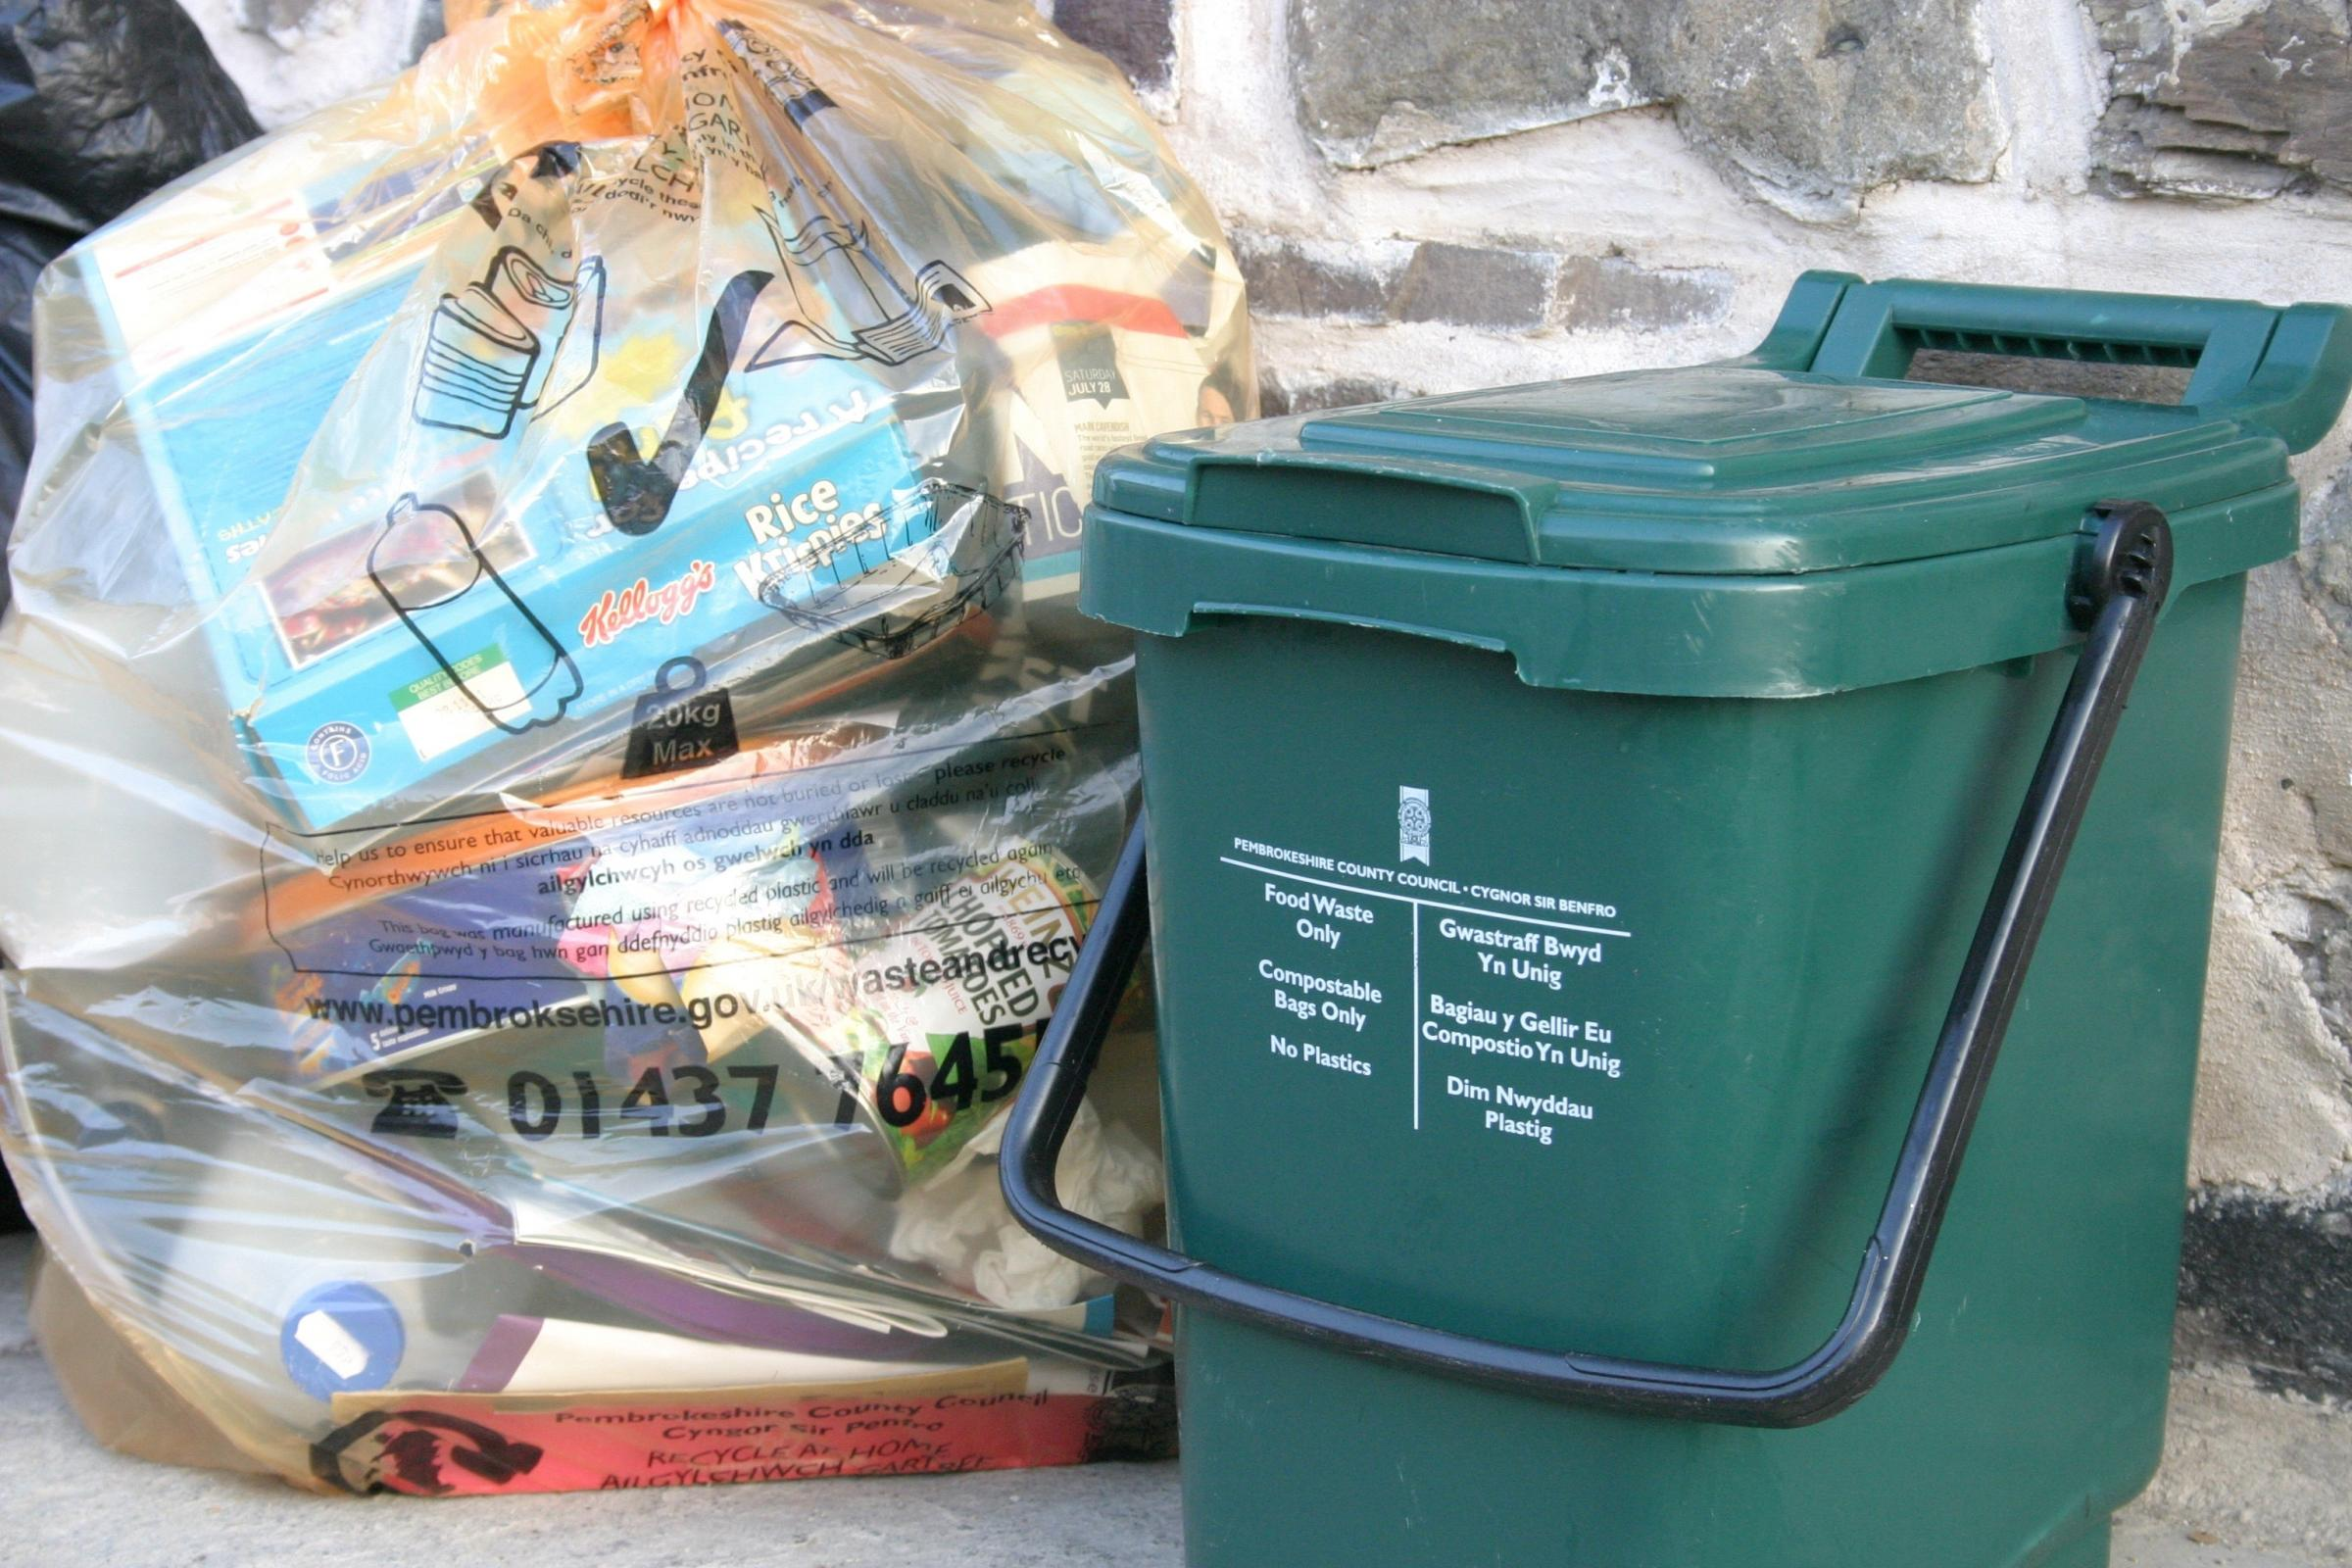 Another step closer to three-weekly bin collections for Pembrokeshire